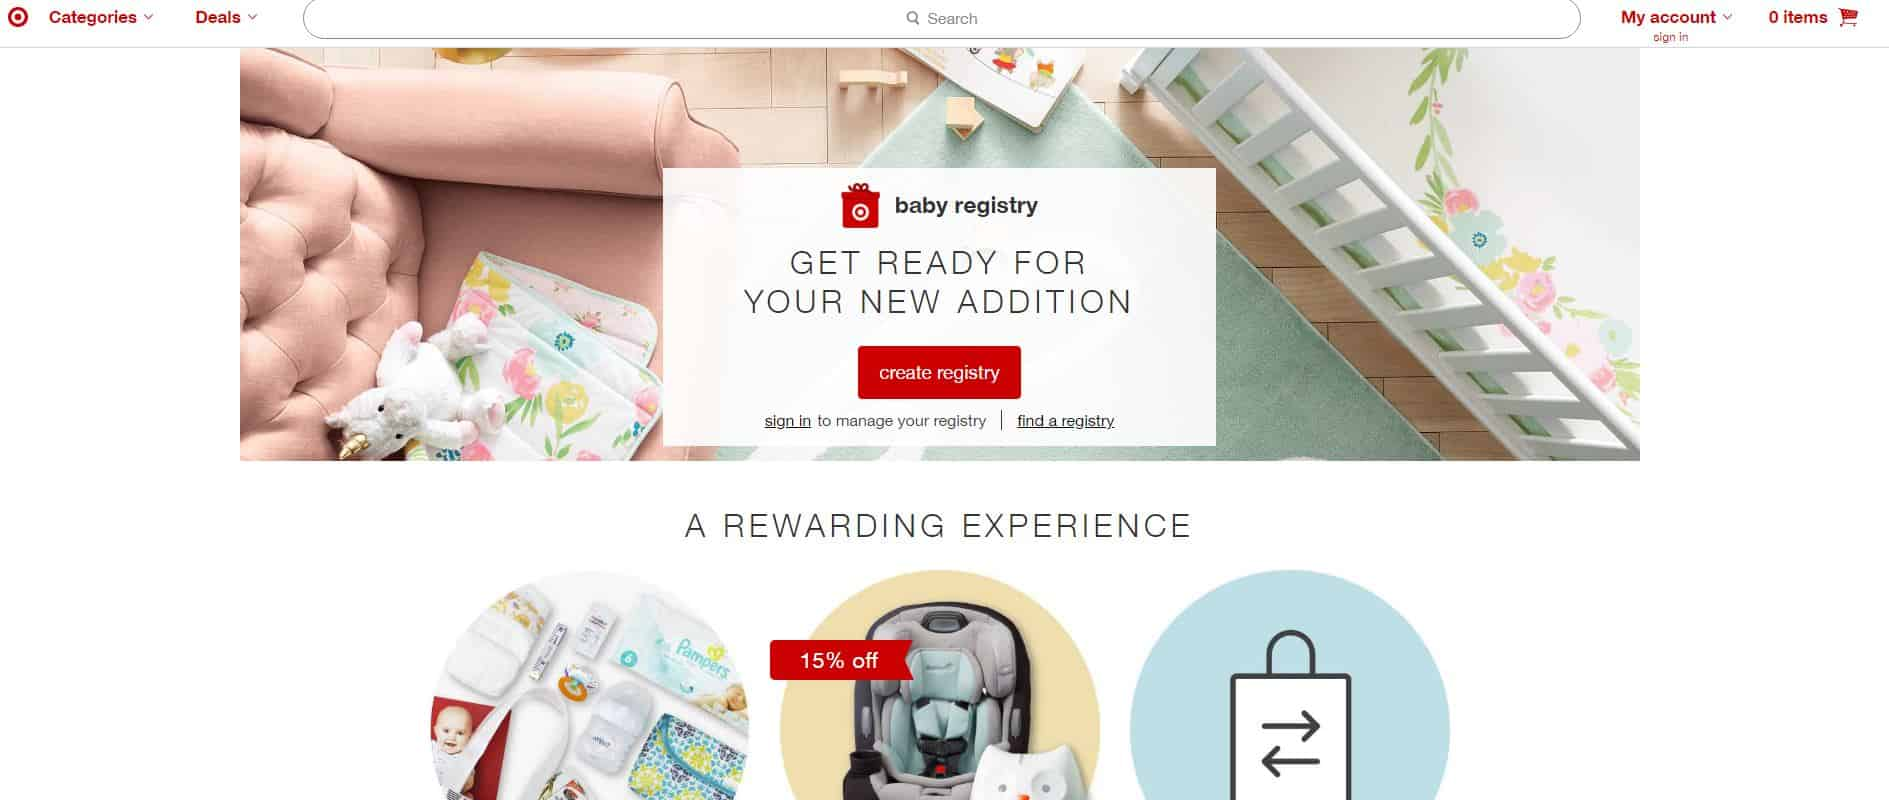 Best Place To Do Baby Registry Setup In 2018 Online And